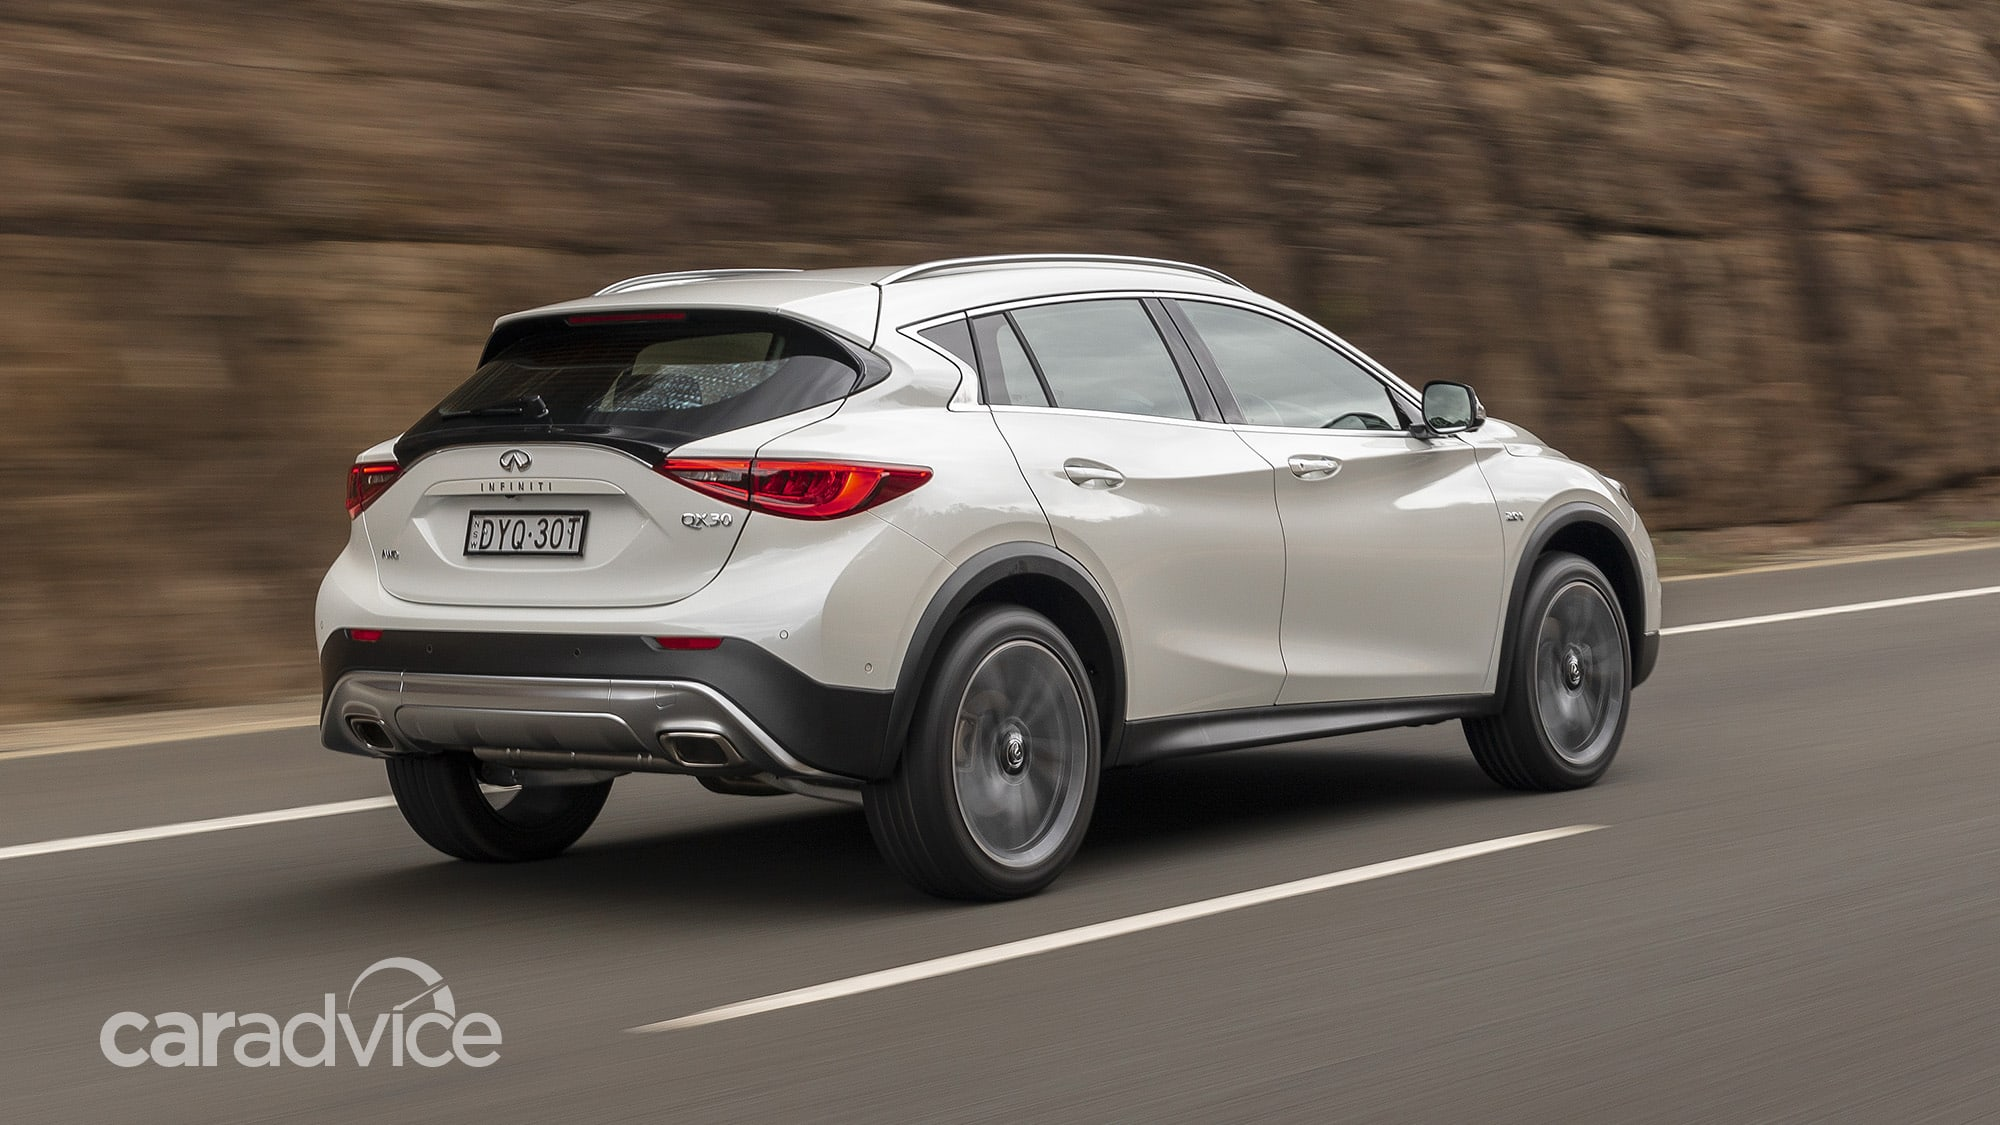 2019 Infiniti Q30, QX30 pricing and specs | CarAdvice